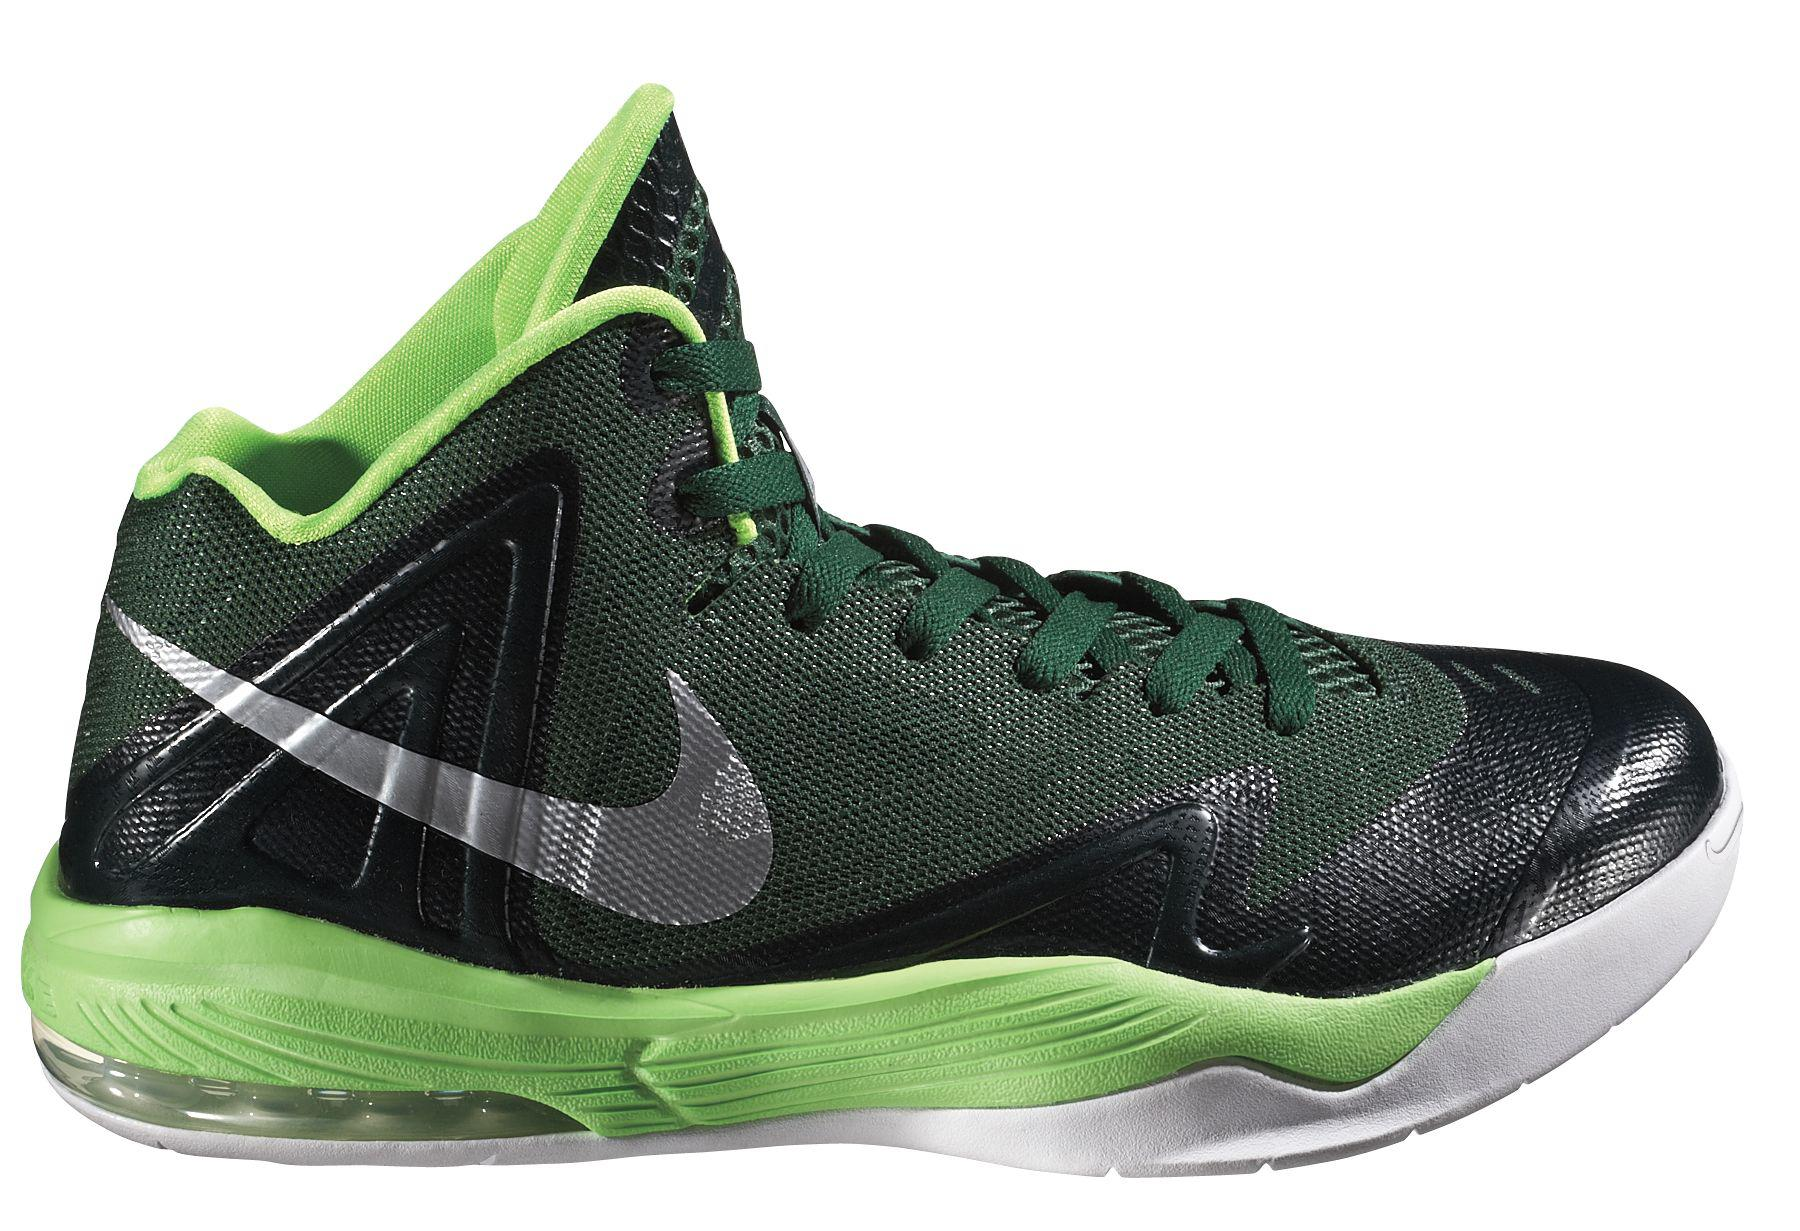 Lyst Basketball Green Nike Shoes In Men Max Premiere For Air vw6grqv